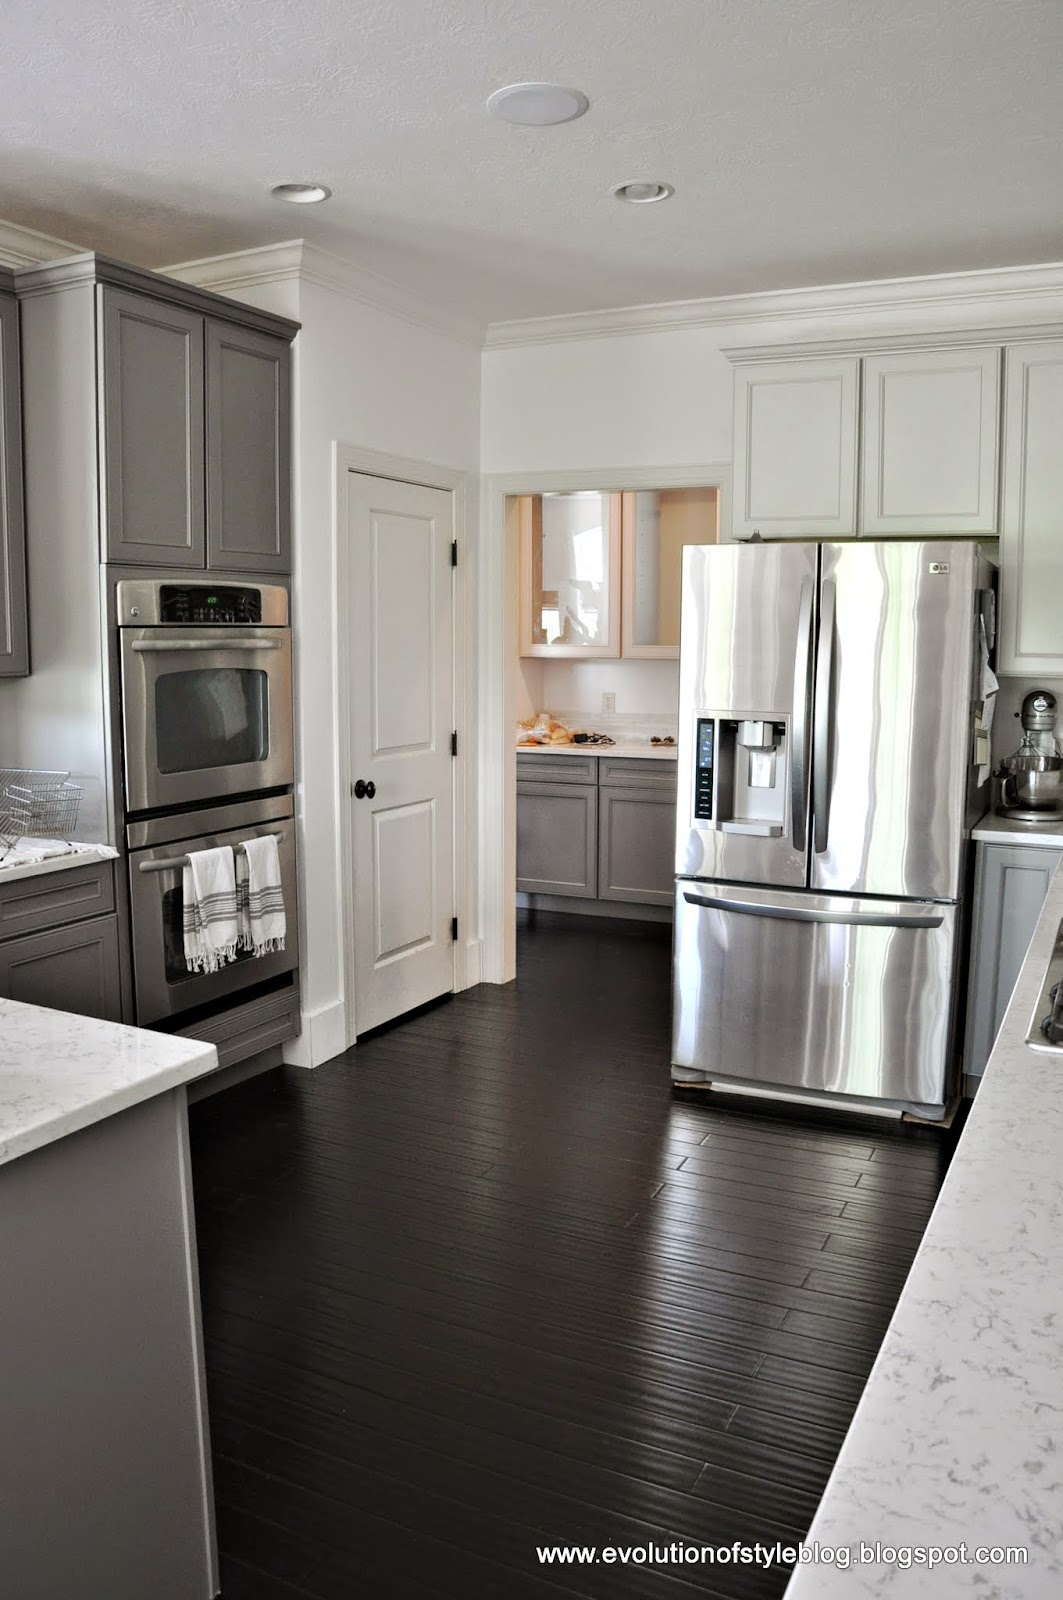 A TwoToned Client Kitchen An Announcement Evolution Of Style - Grey and white cabinets in kitchen